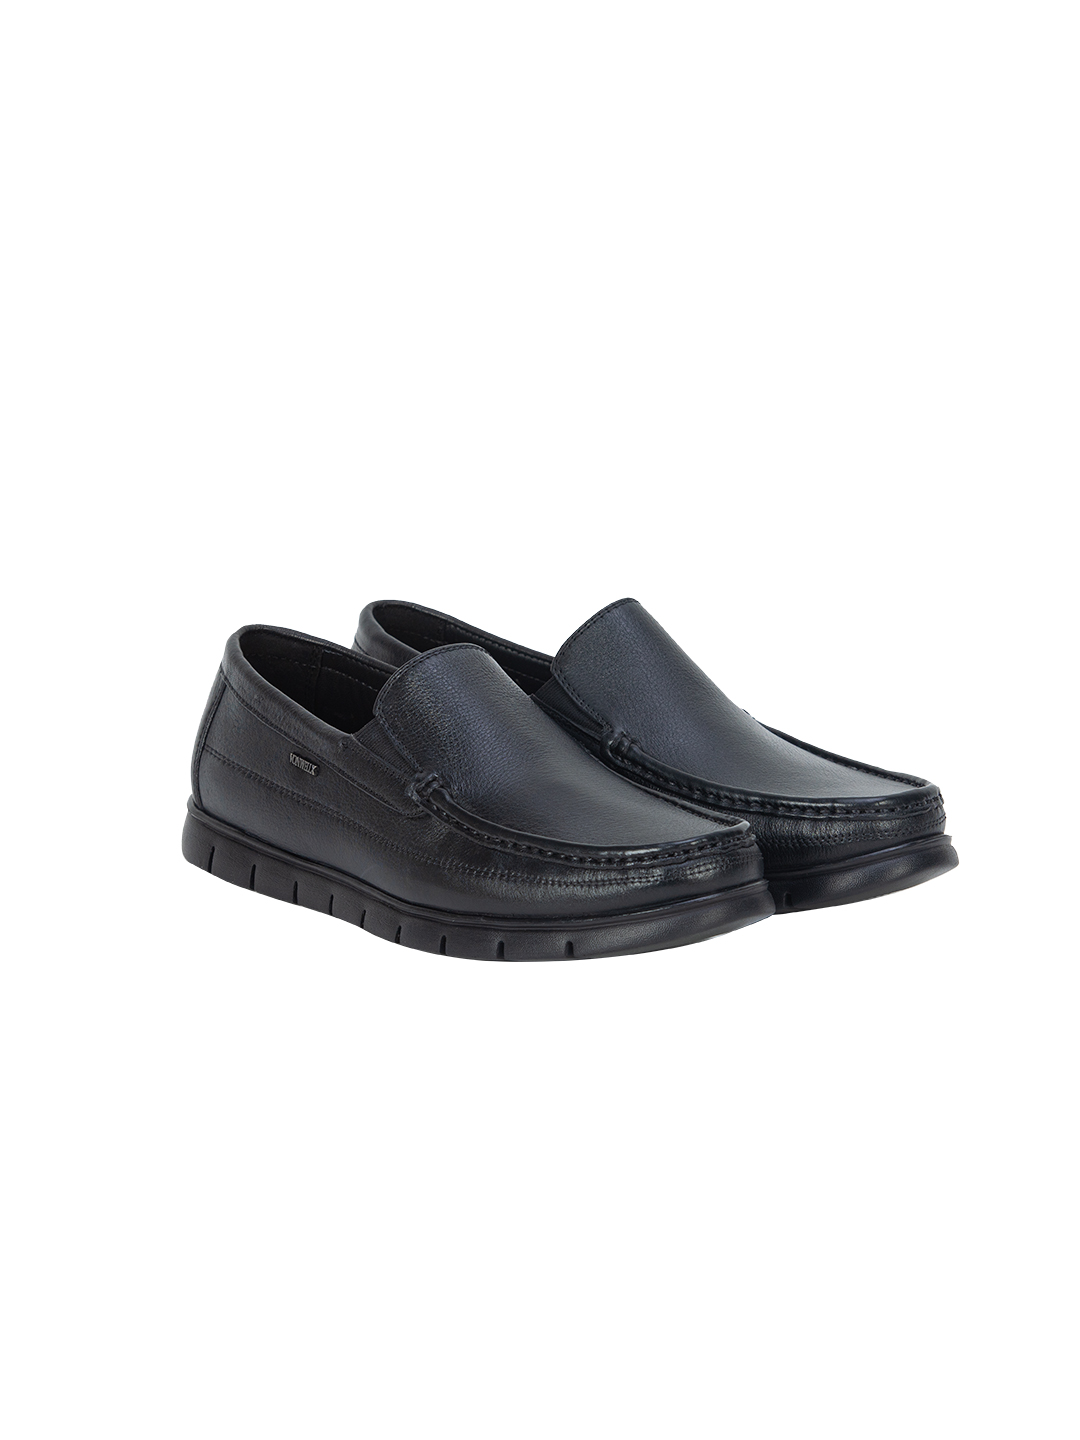 Buy Von Wellx Germany Comfort Black Zion Shoes Online in Kandy